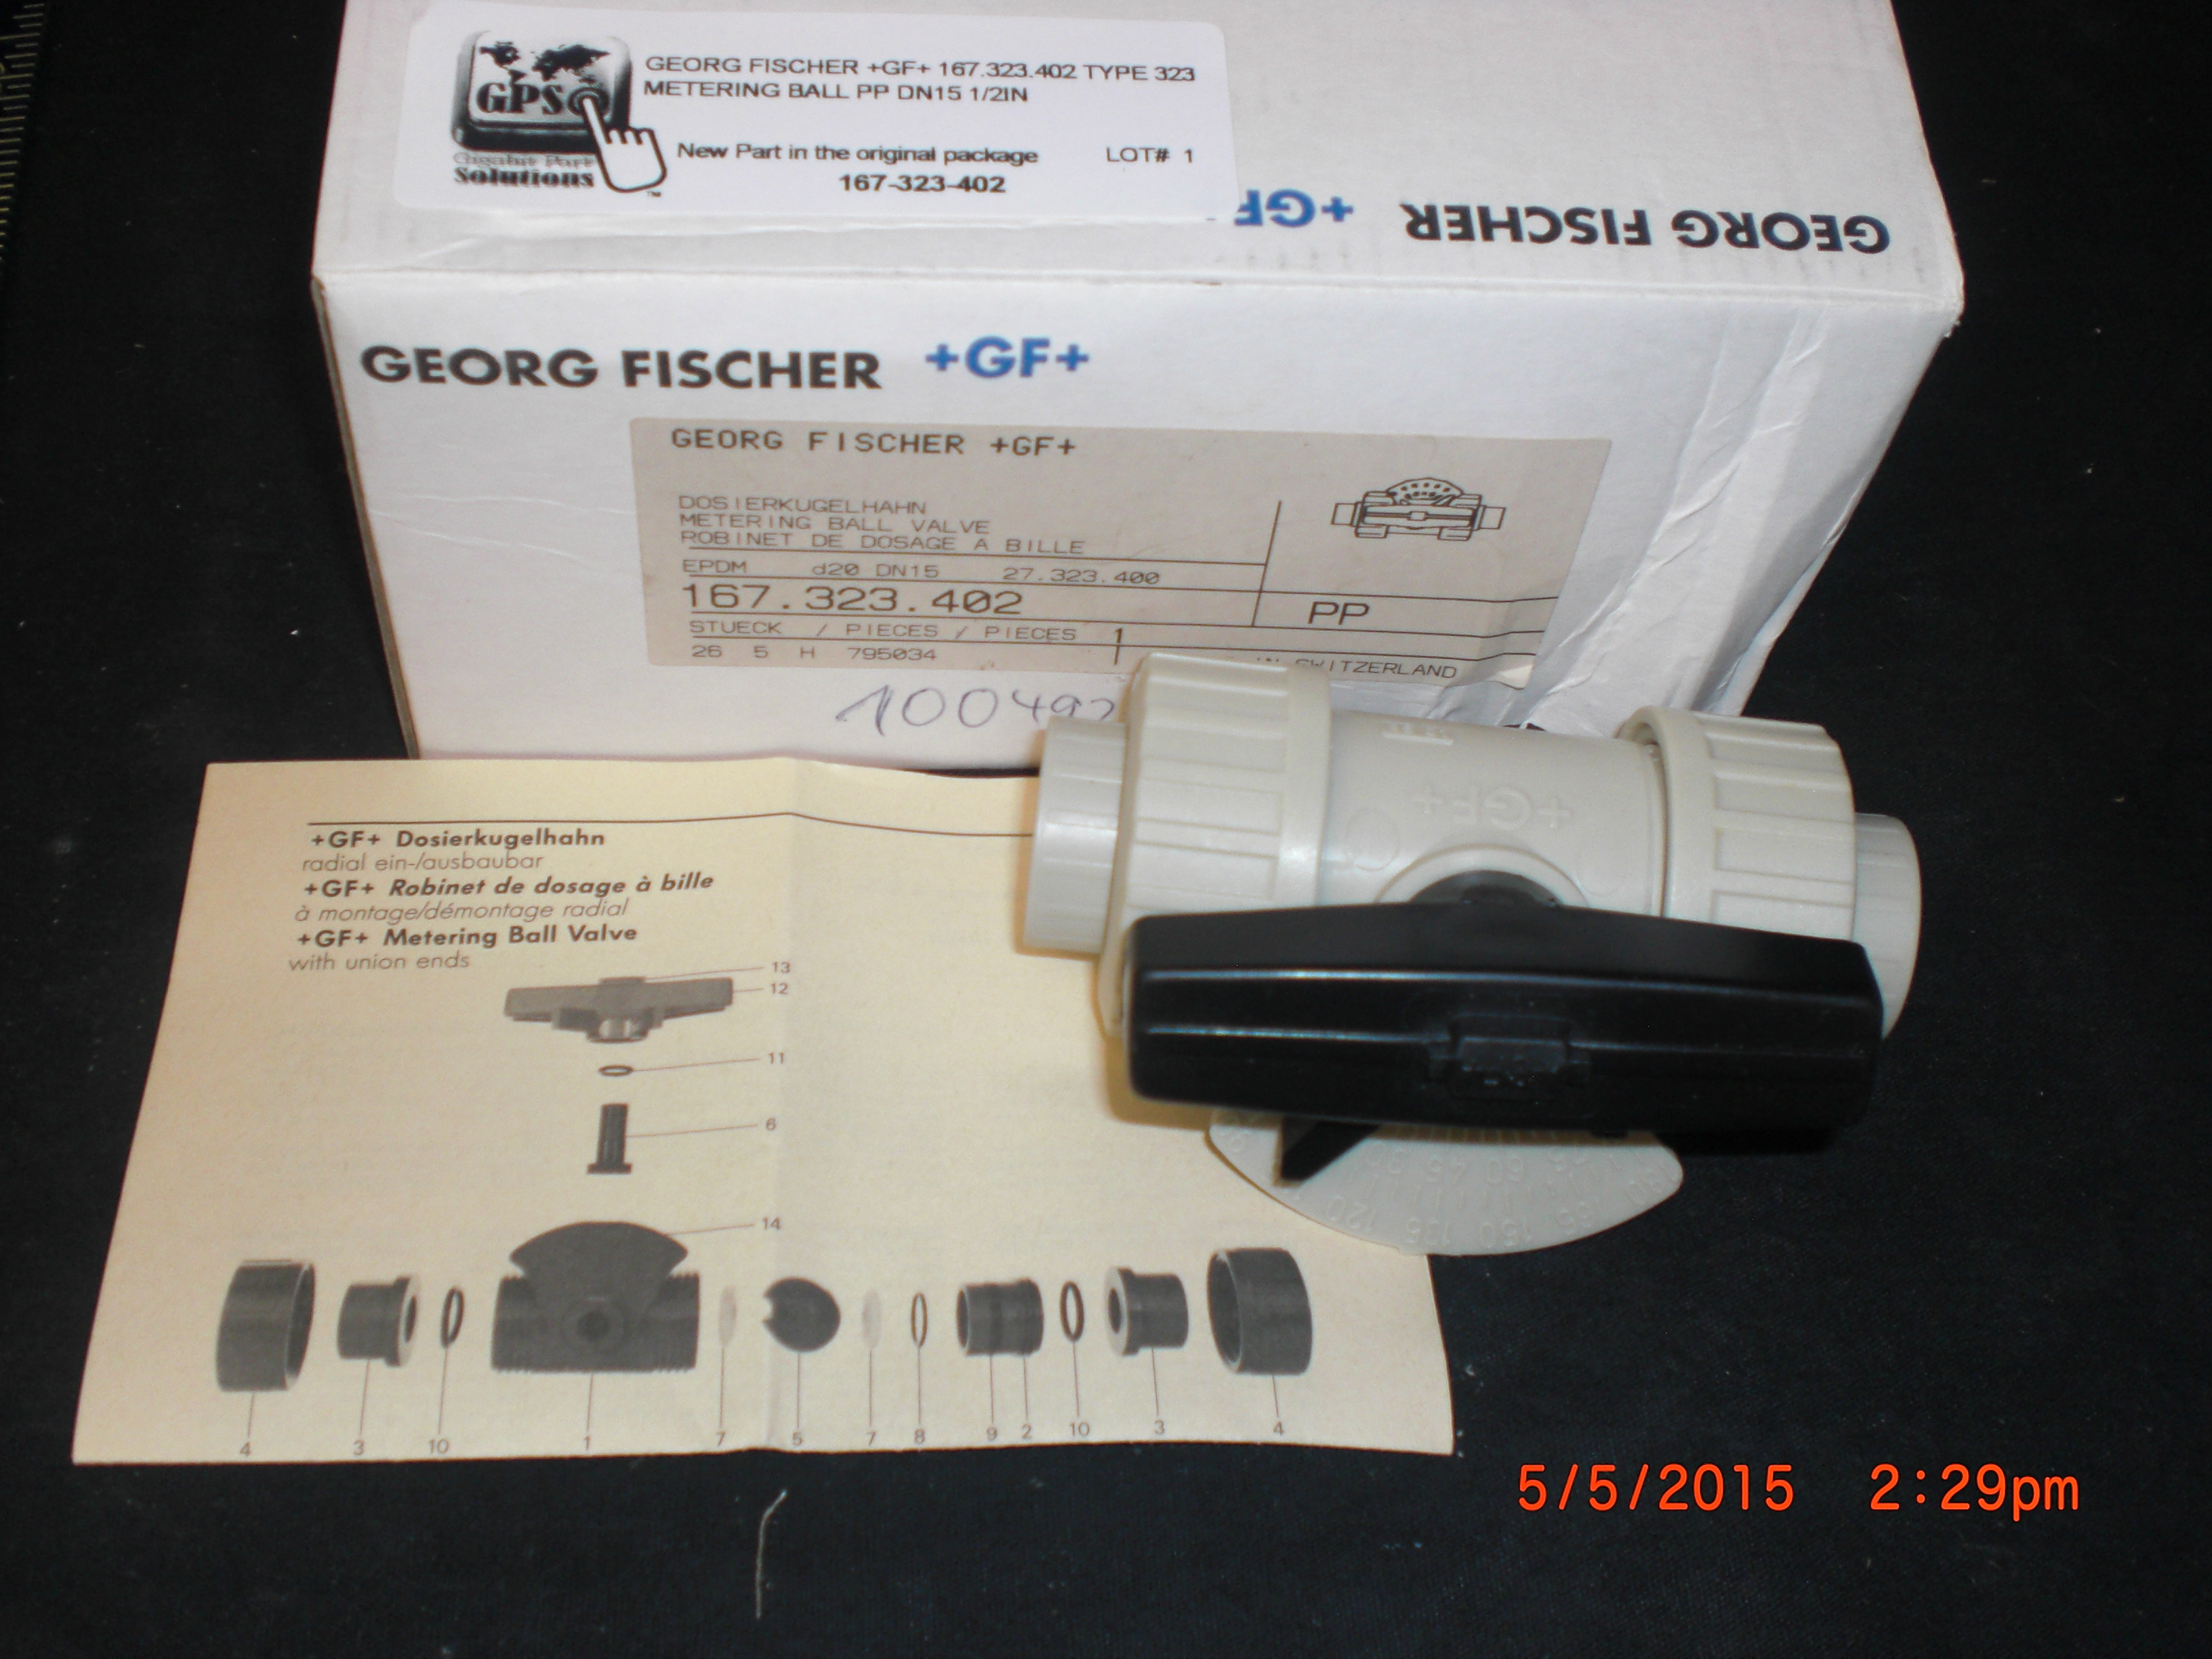 Valve Metering ball PP DN15 1/2in GEORG FISCHER +GF+ 167.323.402 Type 323